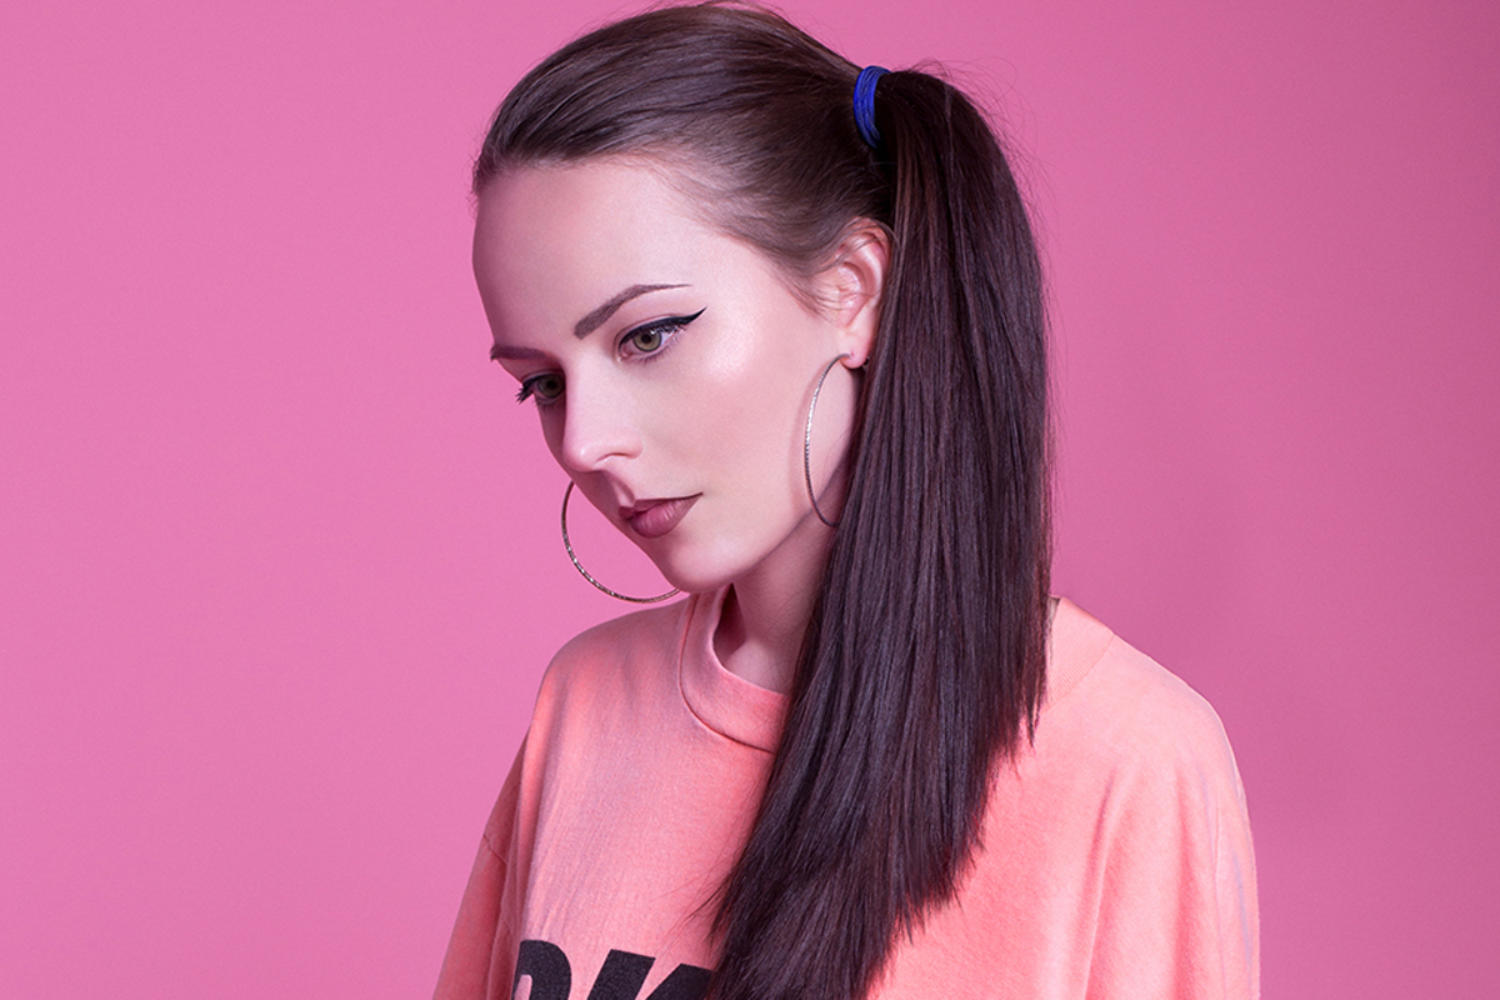 PC Music's A.G. Cook, QT, Hannah Diamond and GFOTY give rare interview to Huw Stephens